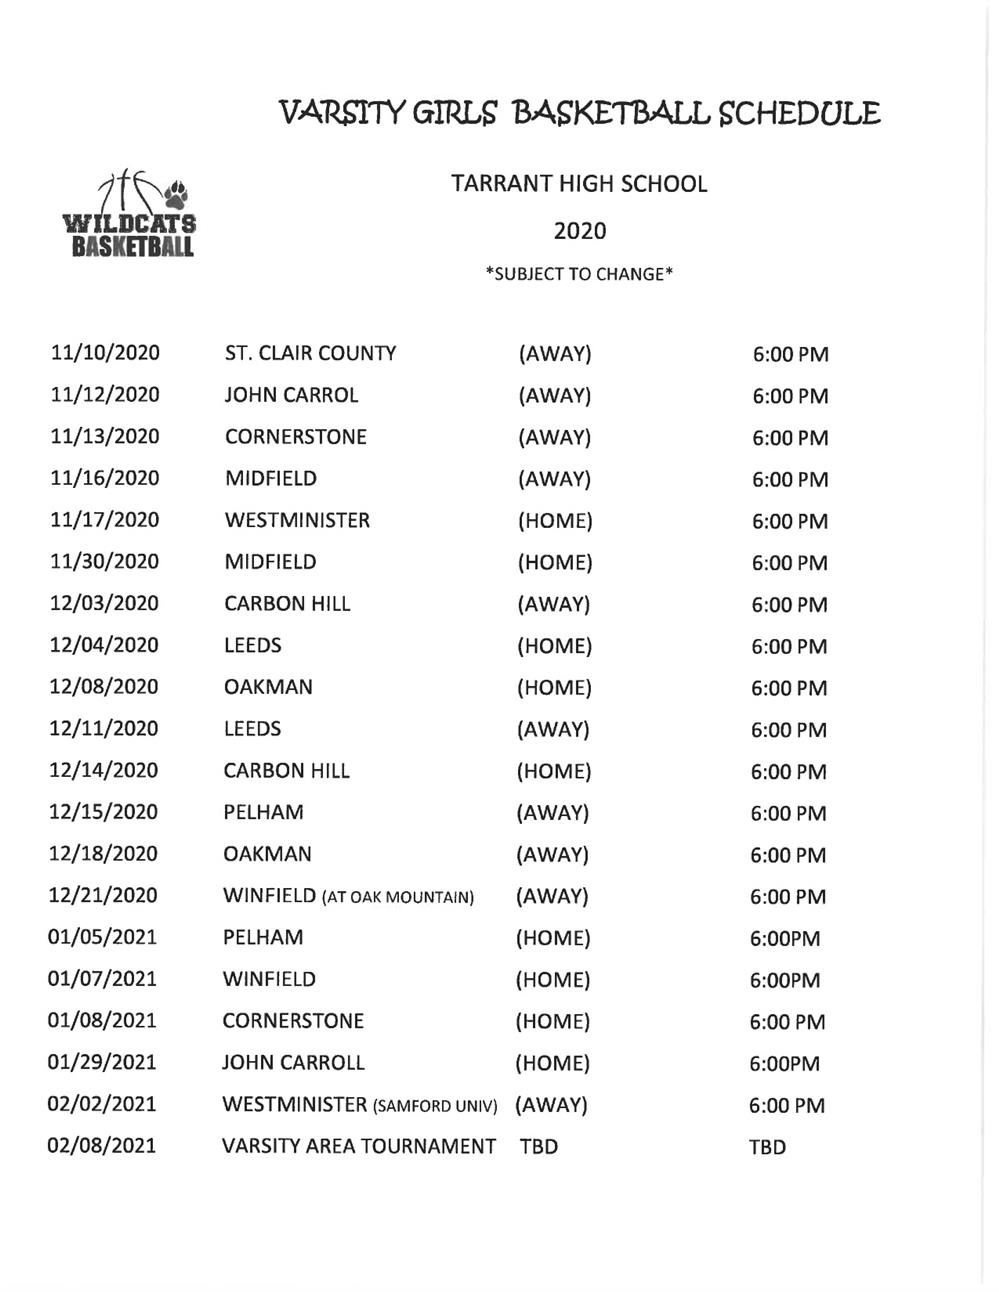 Tarrant High School Girls Basketball Schedule